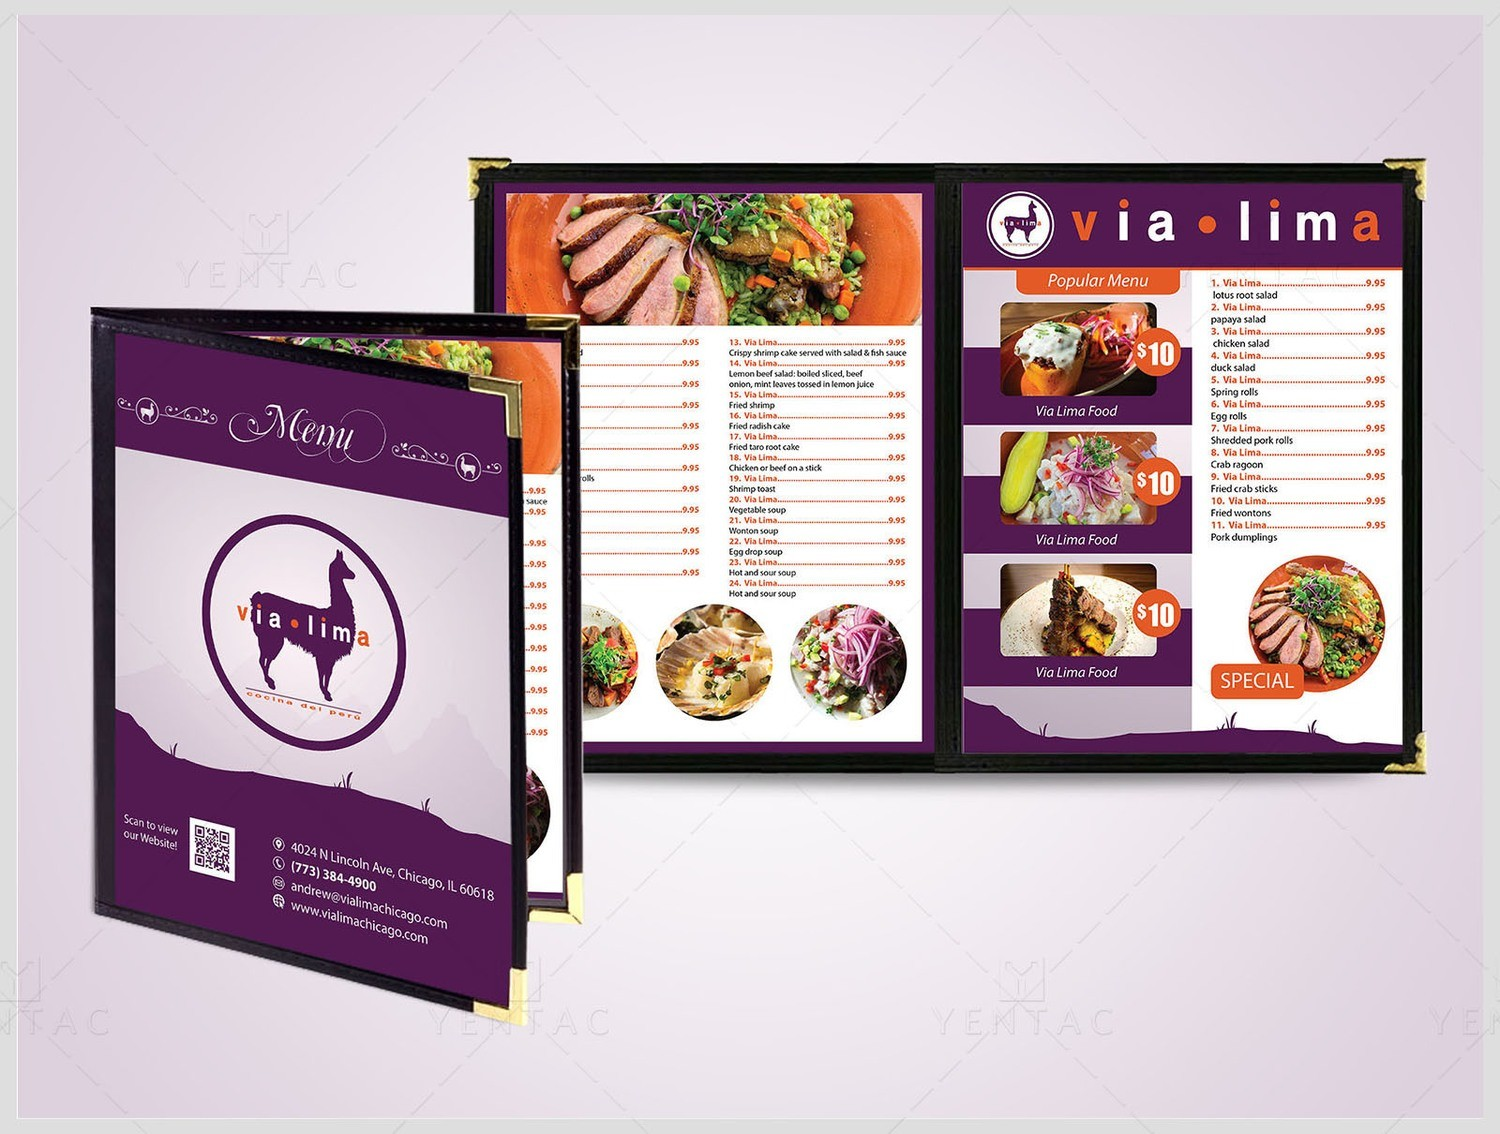 03 - Menu Dine-In - Restaurant #8000 Via Brand